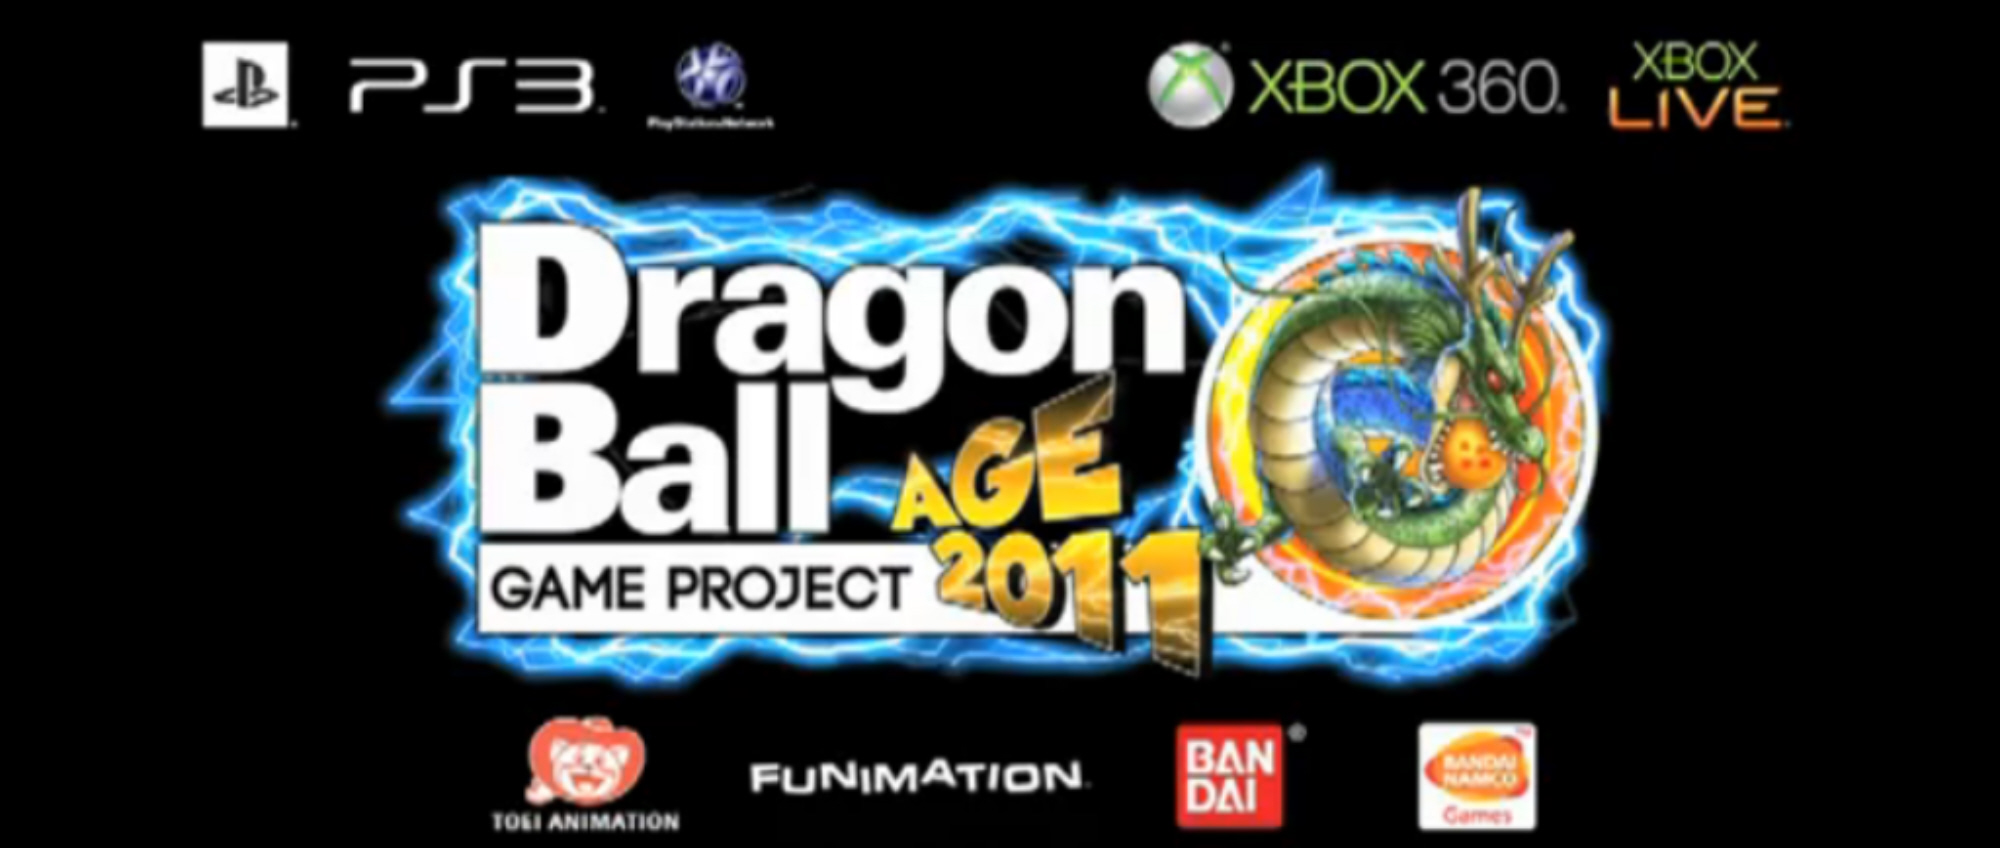 Dragon Ball Project Age 2011 first trailer